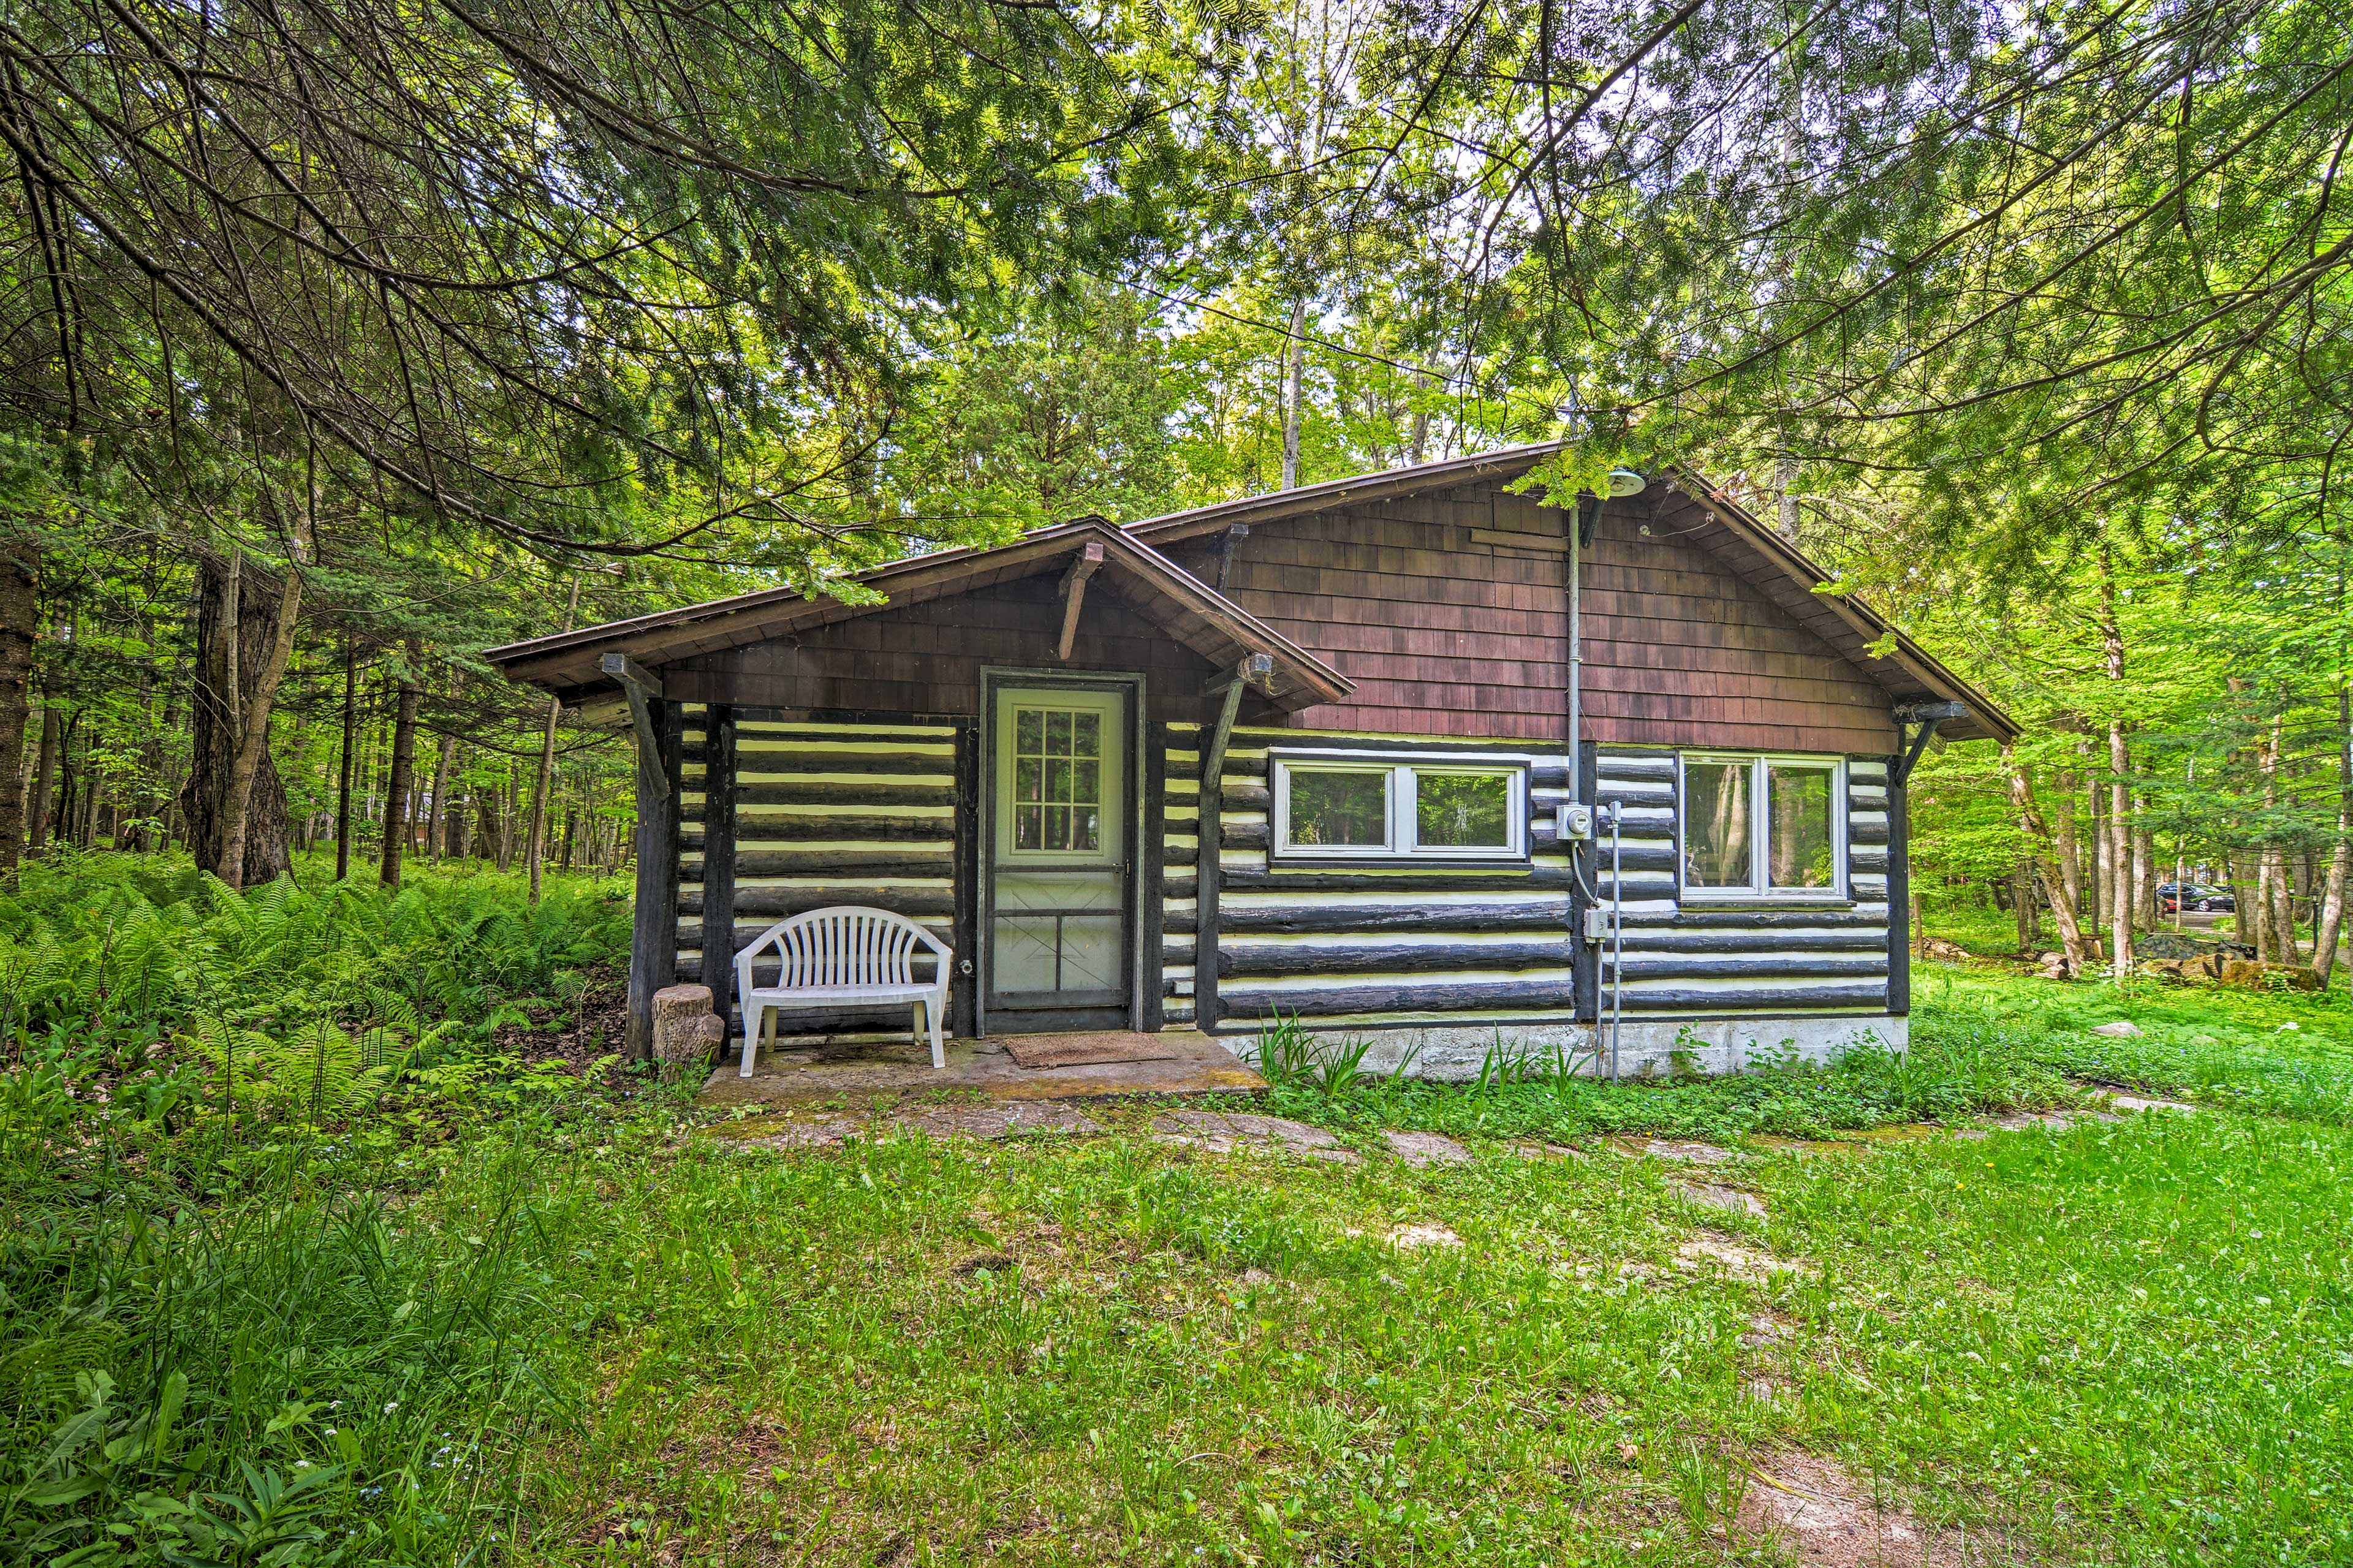 Book a getaway to experience the best of Lake Michigan at this rustic cabin!